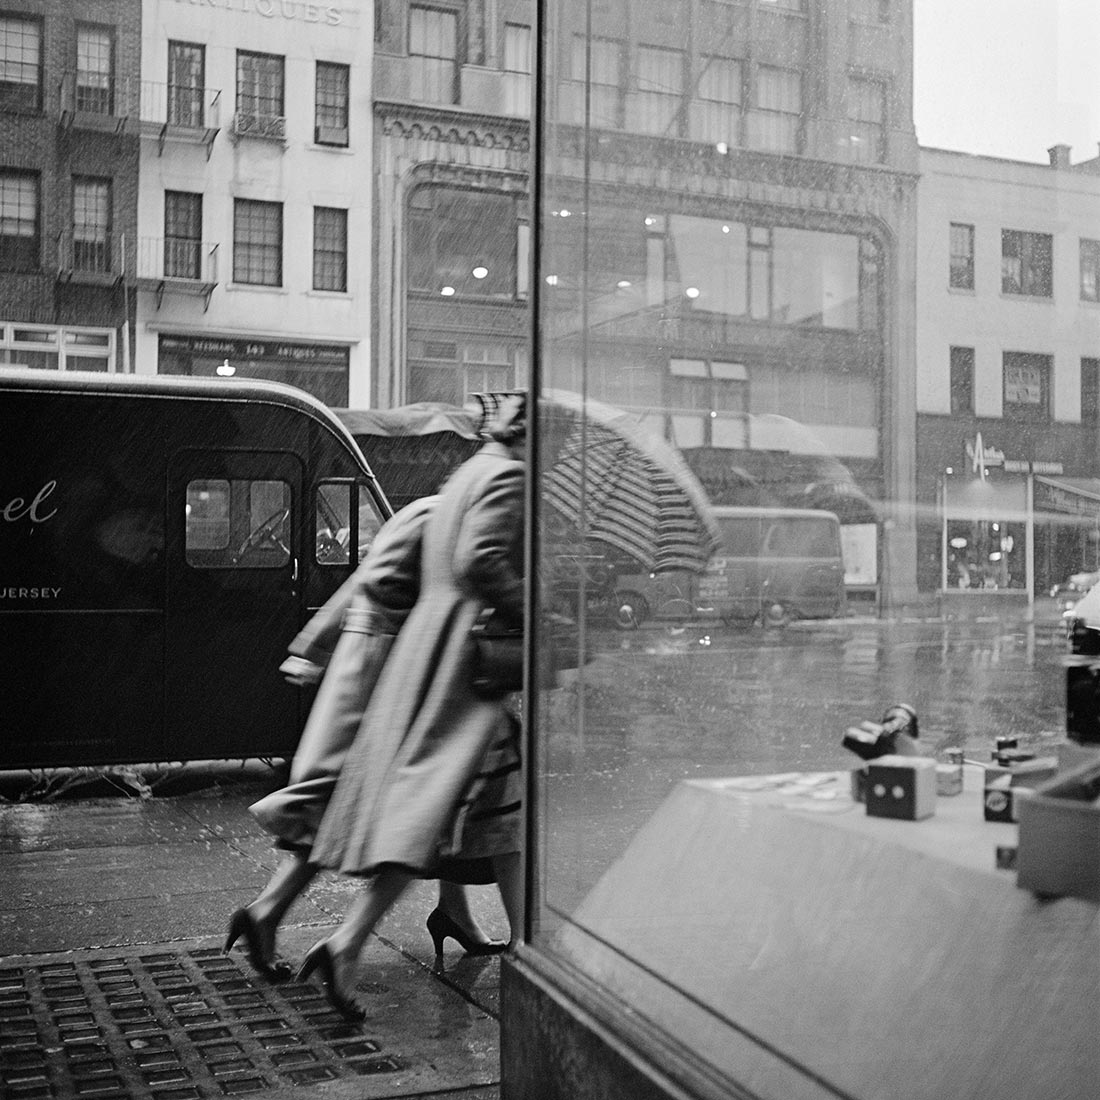 October 29, 1953. New York, NY |  vivianmaier.com